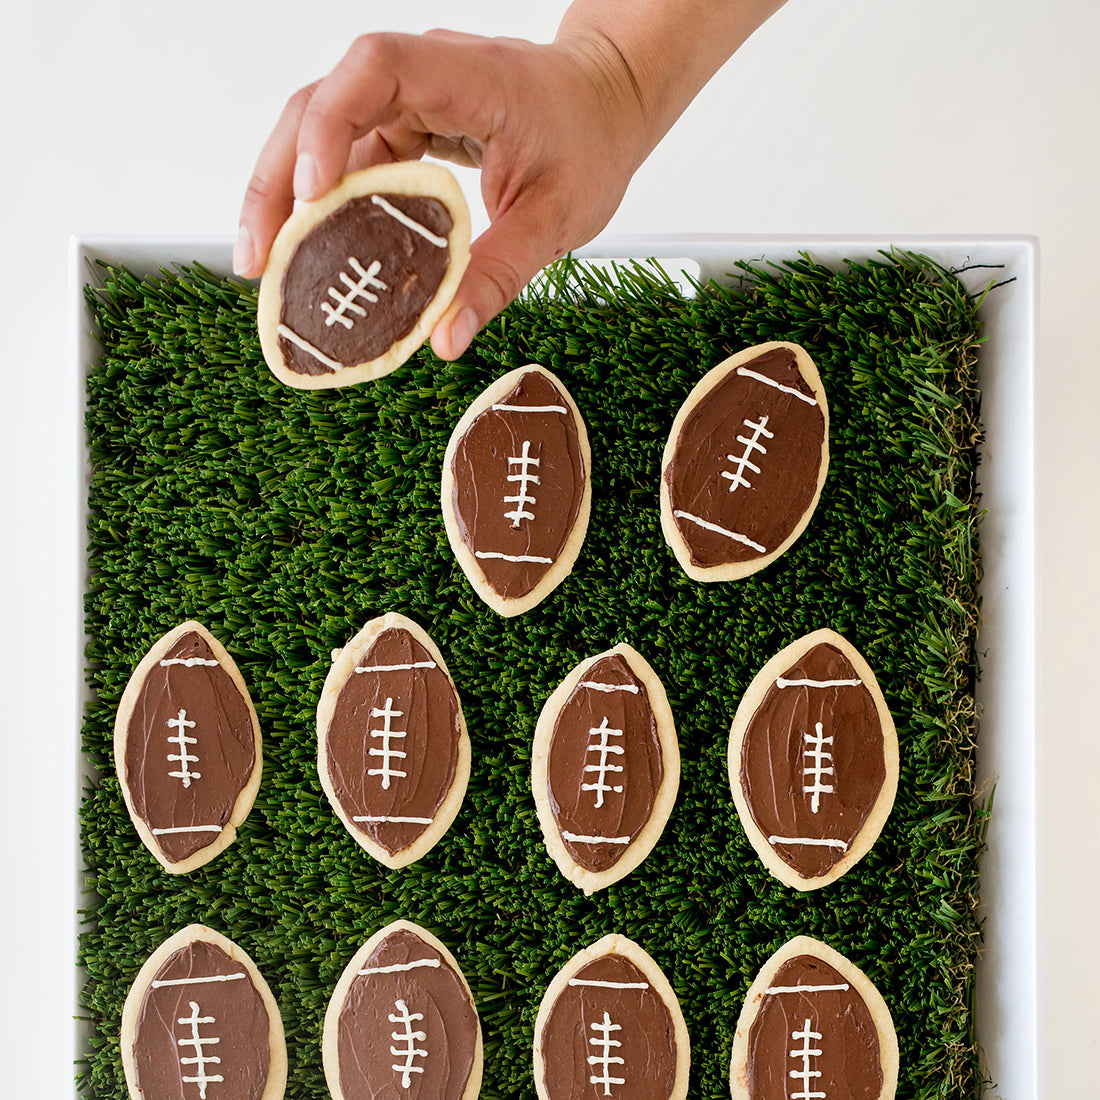 Image from above of eleven Miss Jones Baking Co Soft & Chewy Football Cutout Sugar Cookies on a turf mat